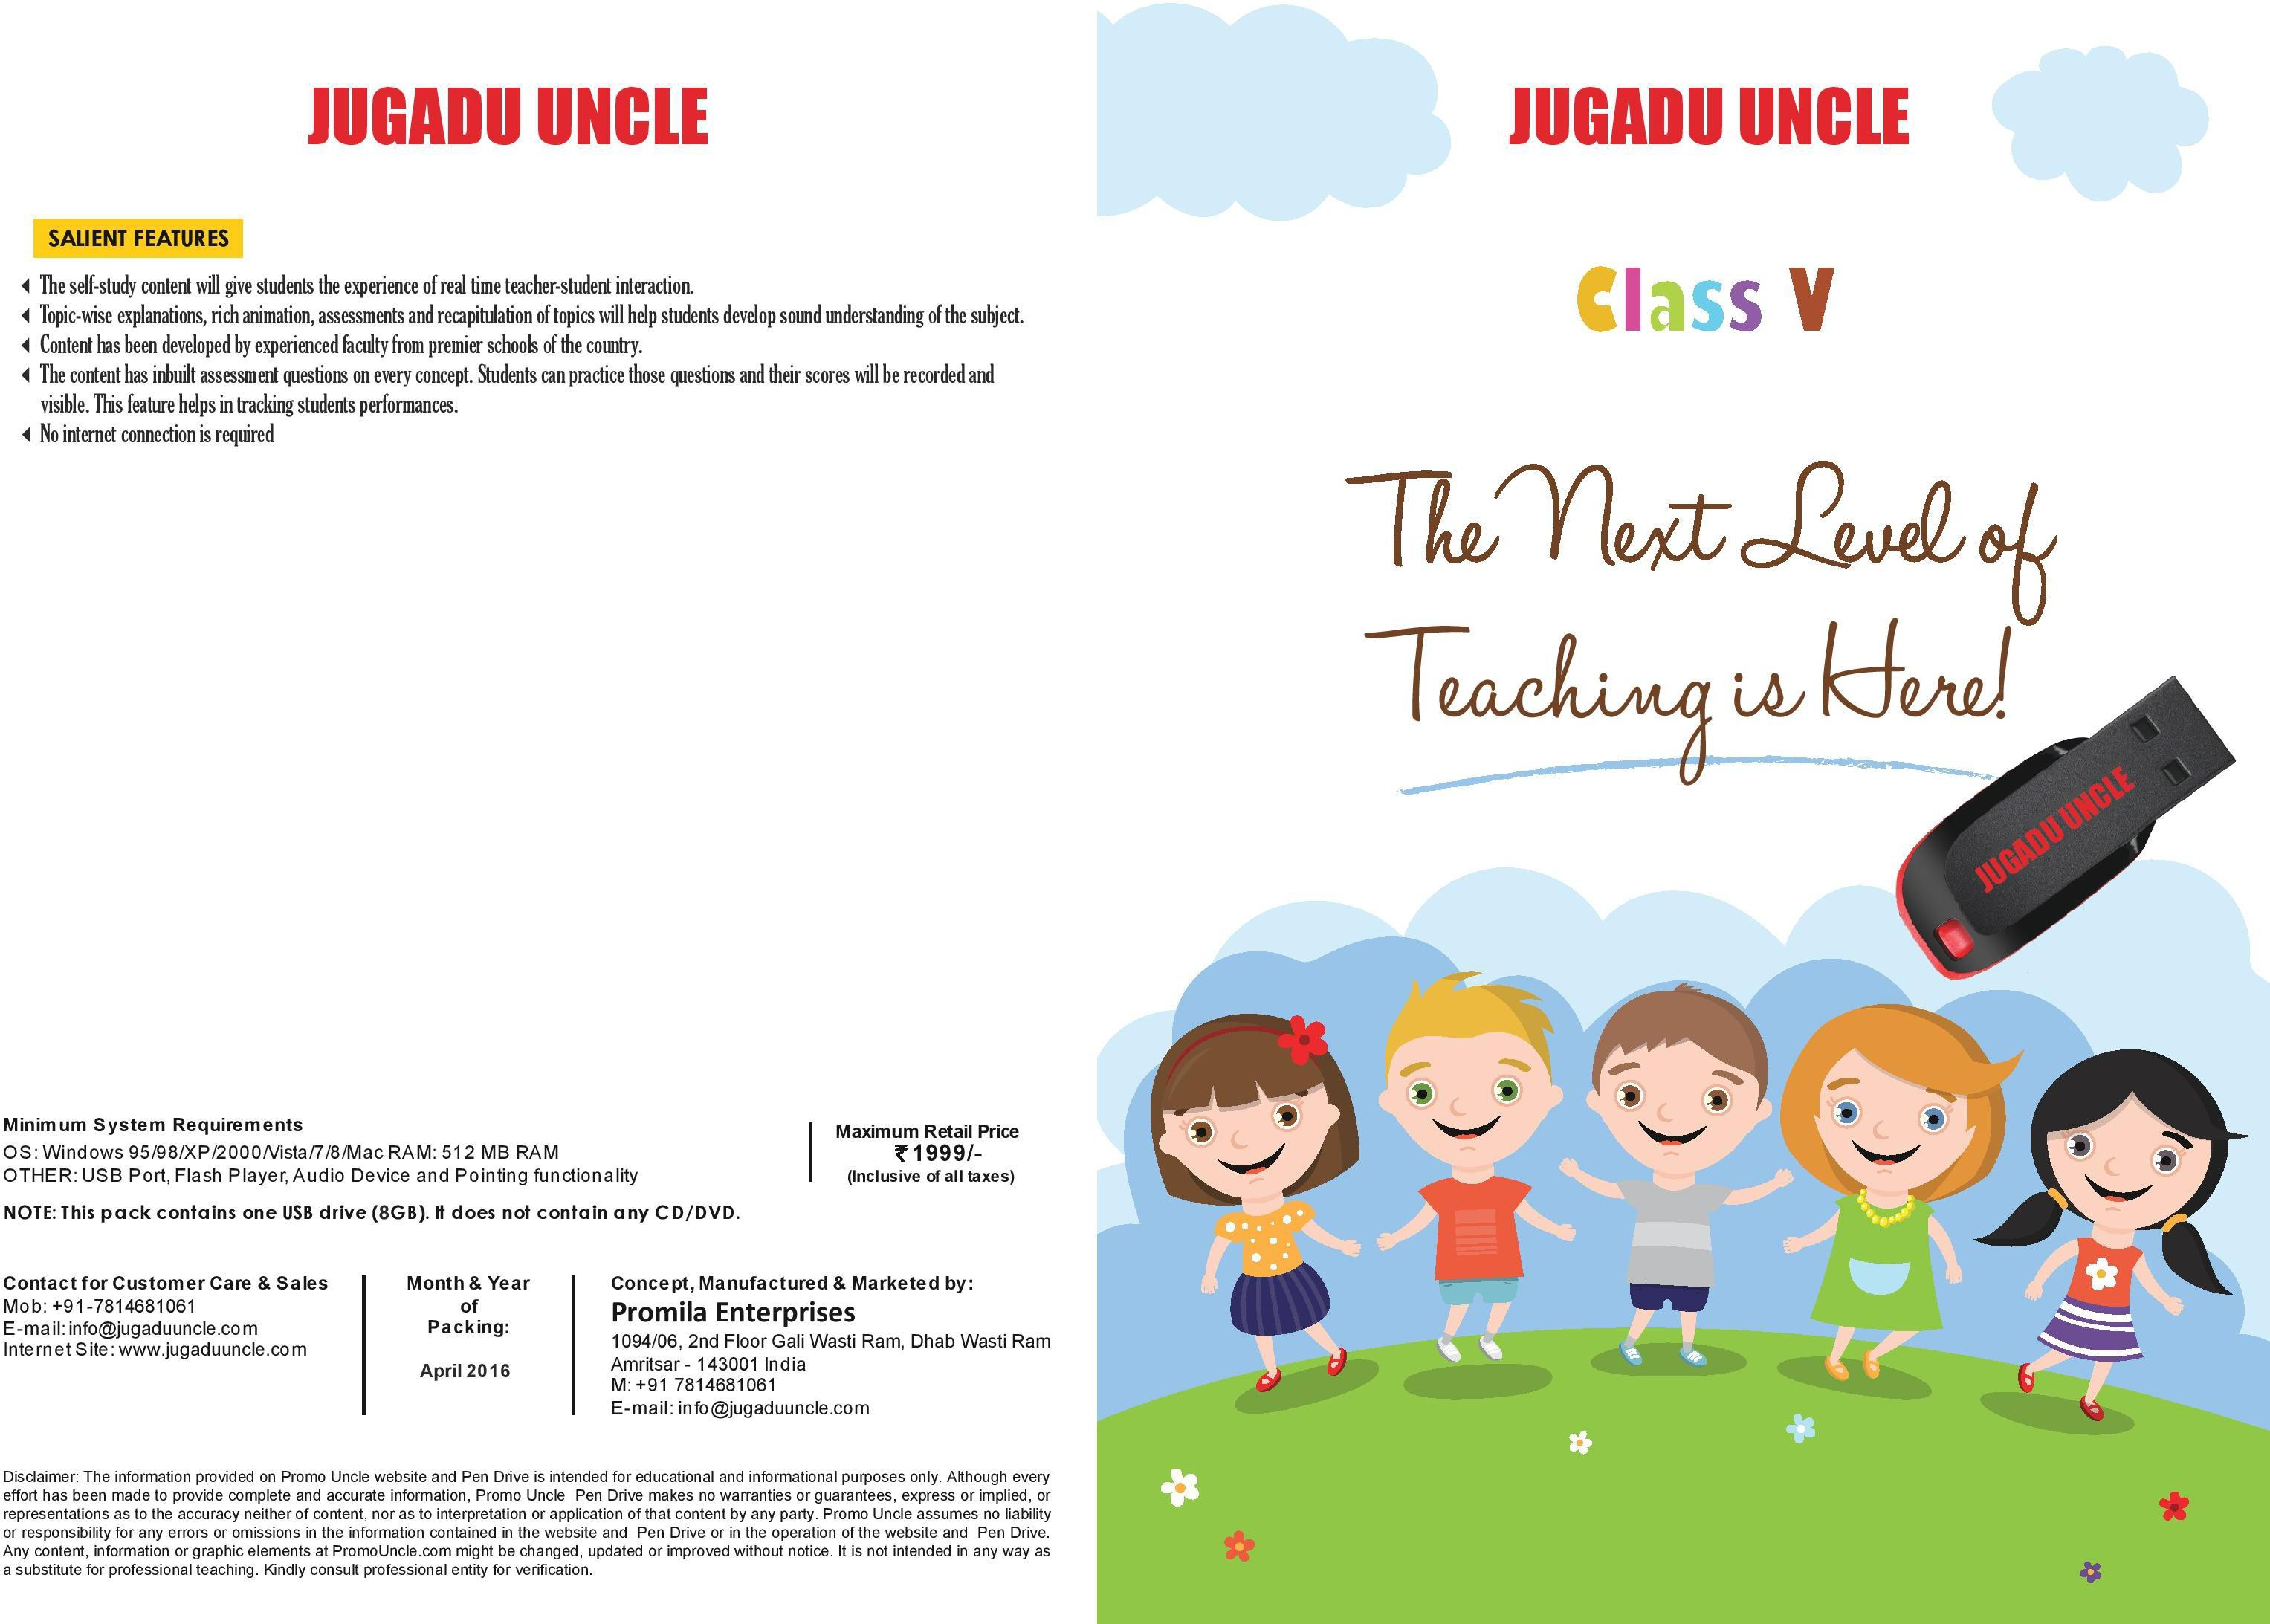 JUGADU UNCLE EDUCATIONAL MEDIA(PEN DRIVE)